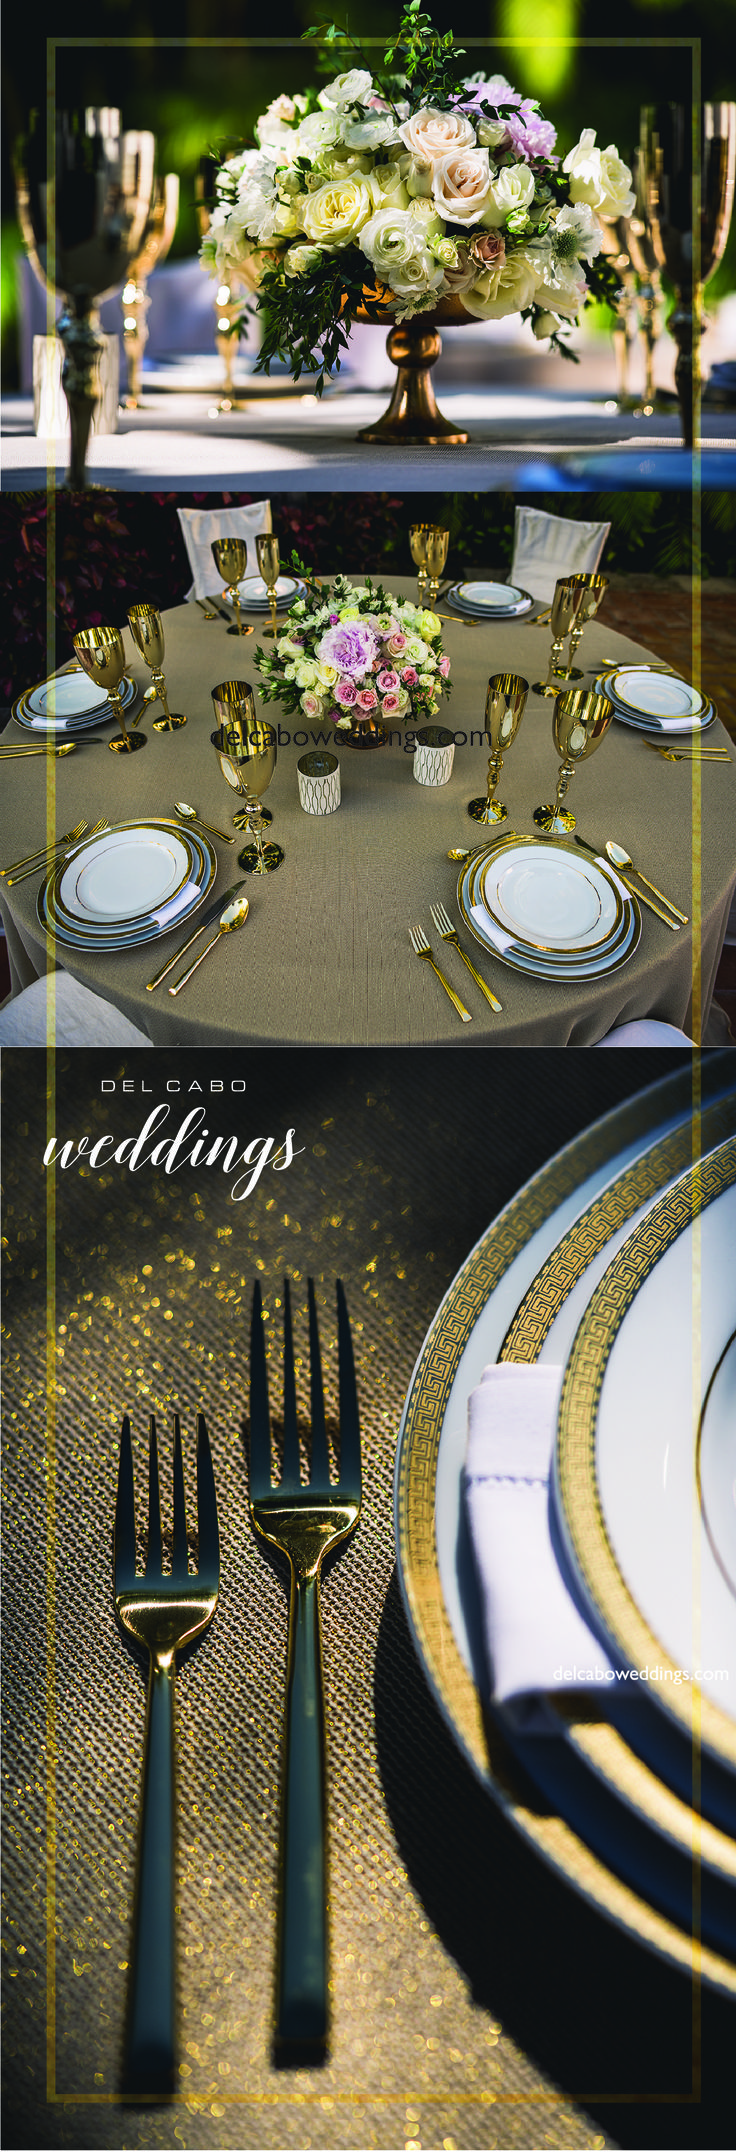 You've never seen a most beautiful metallic wedding theme in your life! Del Cabo Weddings will help you plan and design your dream destination wedding!